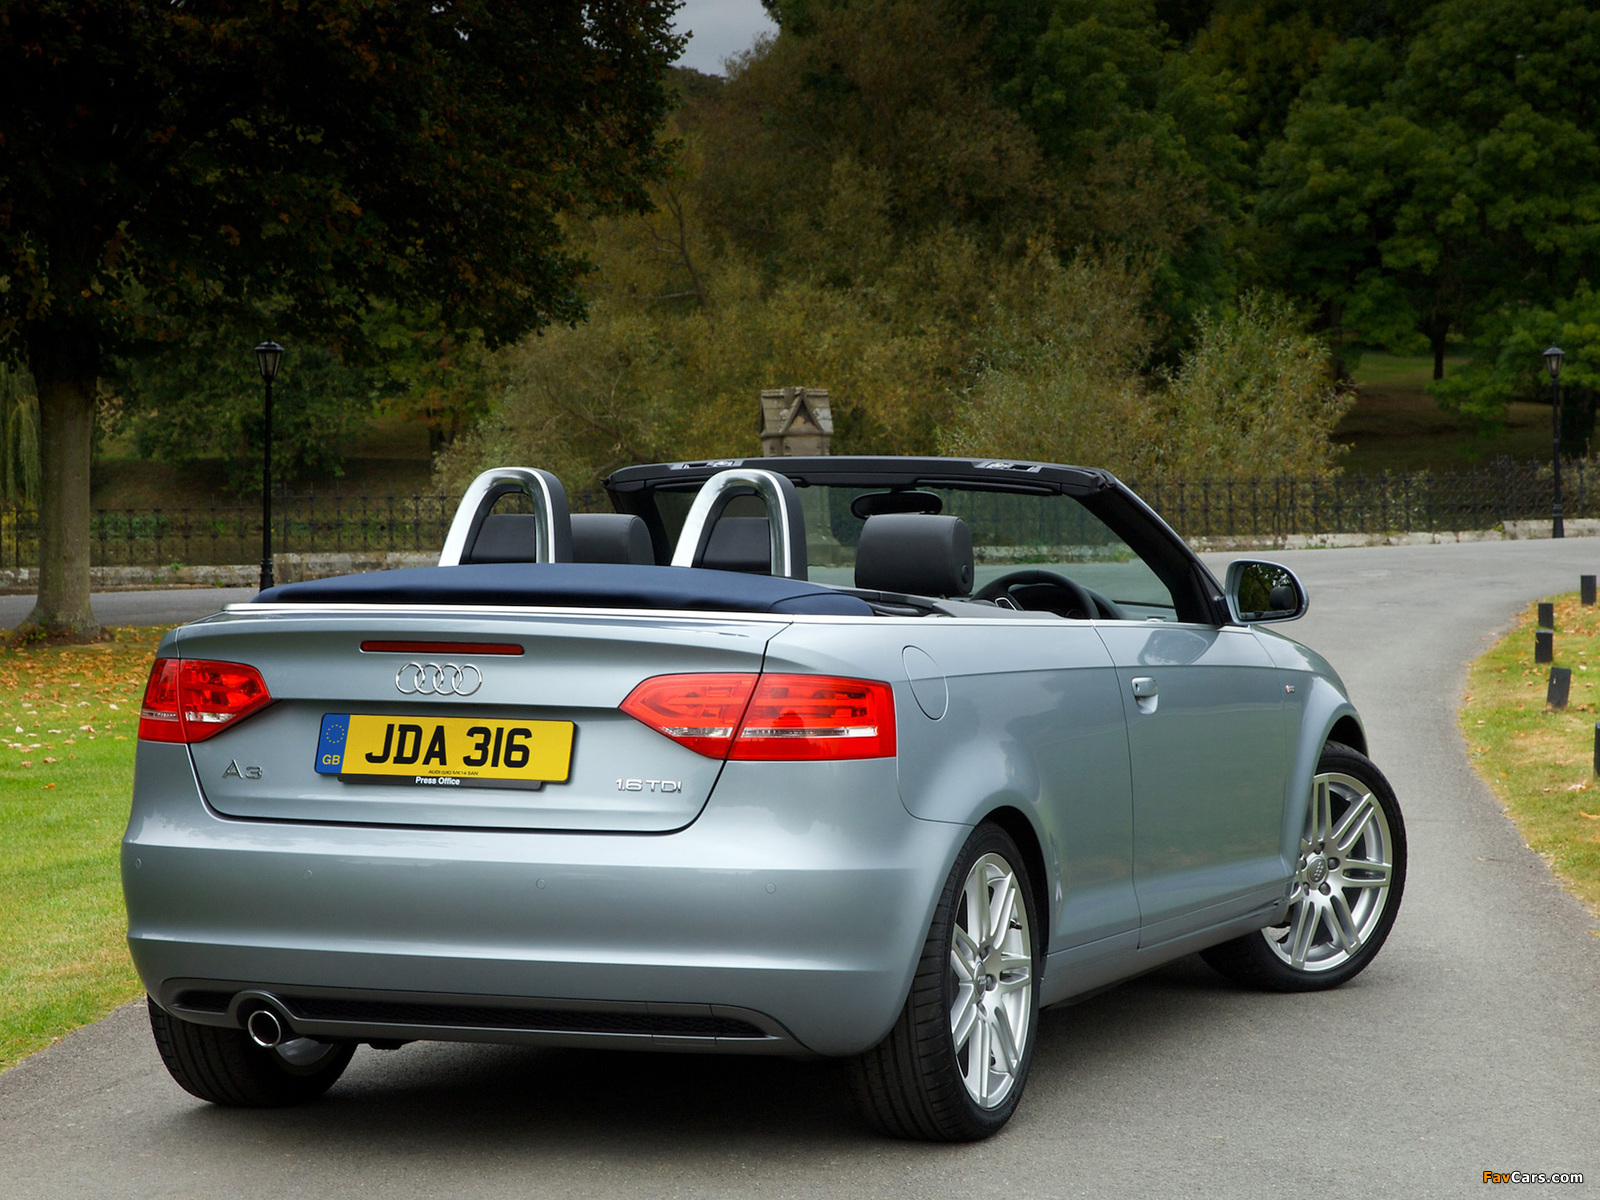 audi a3 1 6 tdi s line cabriolet uk spec 8pa 2008 2010 photos 1600x1200. Black Bedroom Furniture Sets. Home Design Ideas